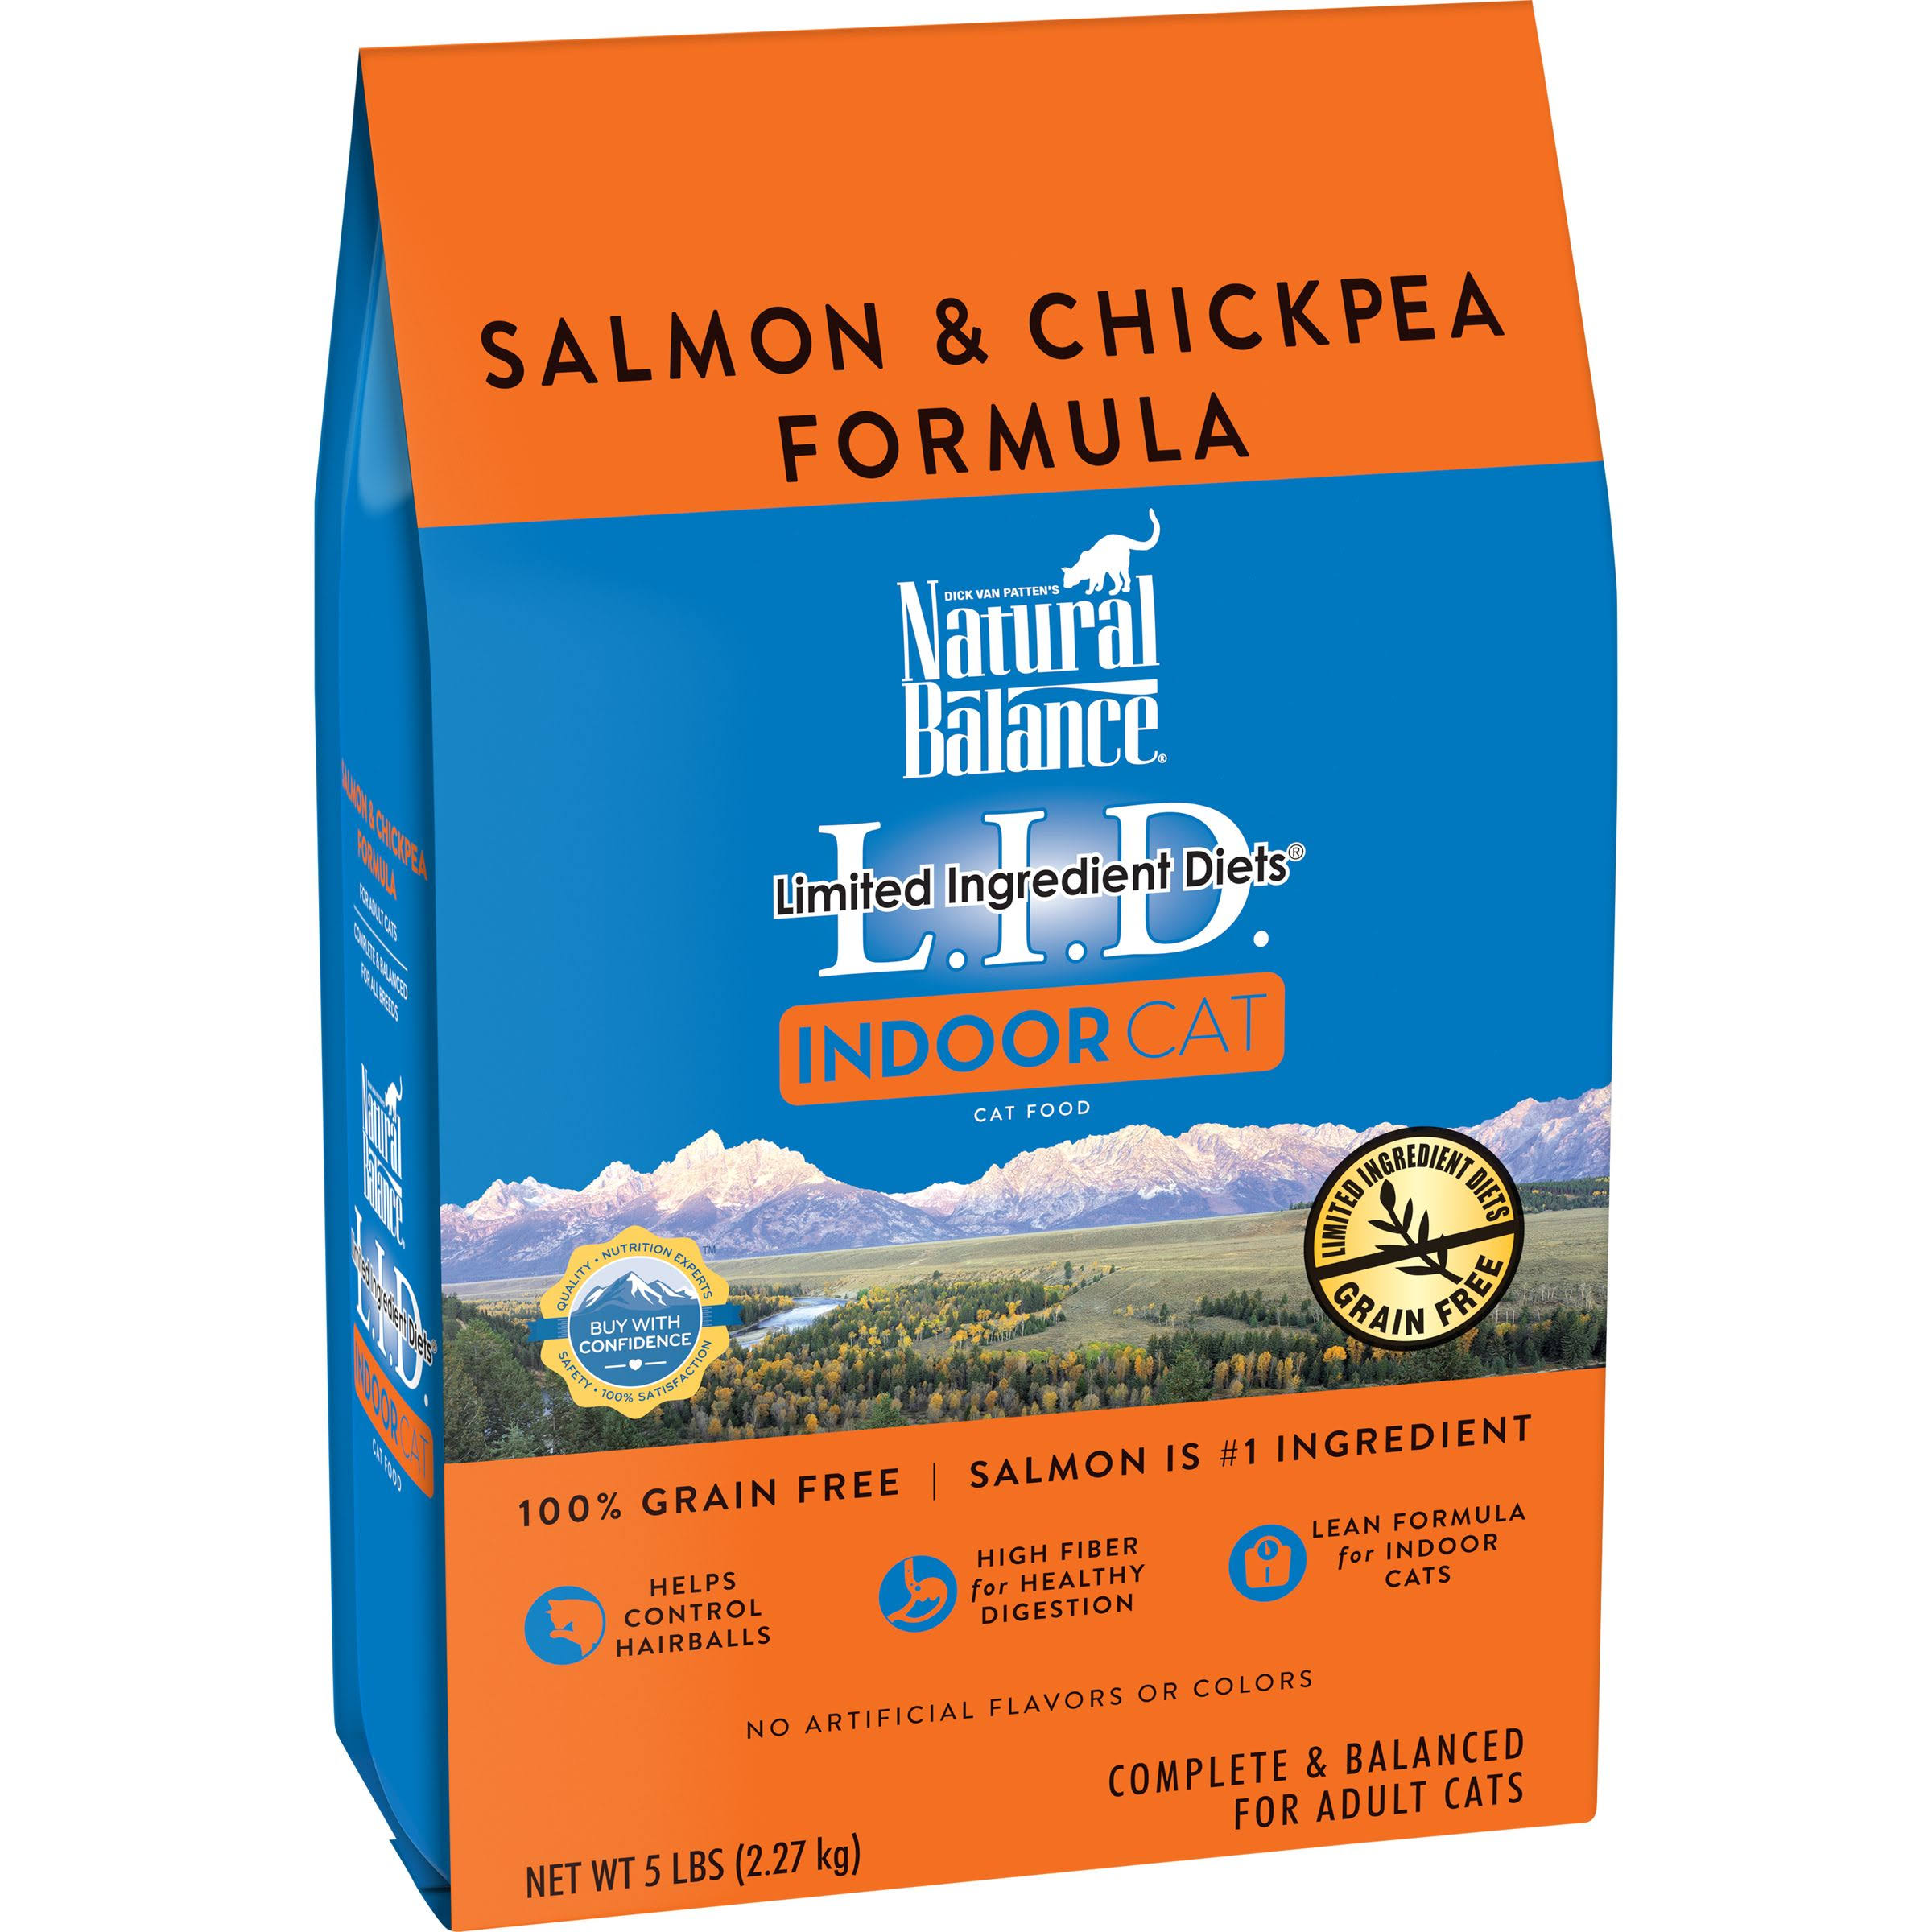 Natural Balance Limited Ingredient Diets Dry Cat Food - Salmon and Chickpea, 5lb